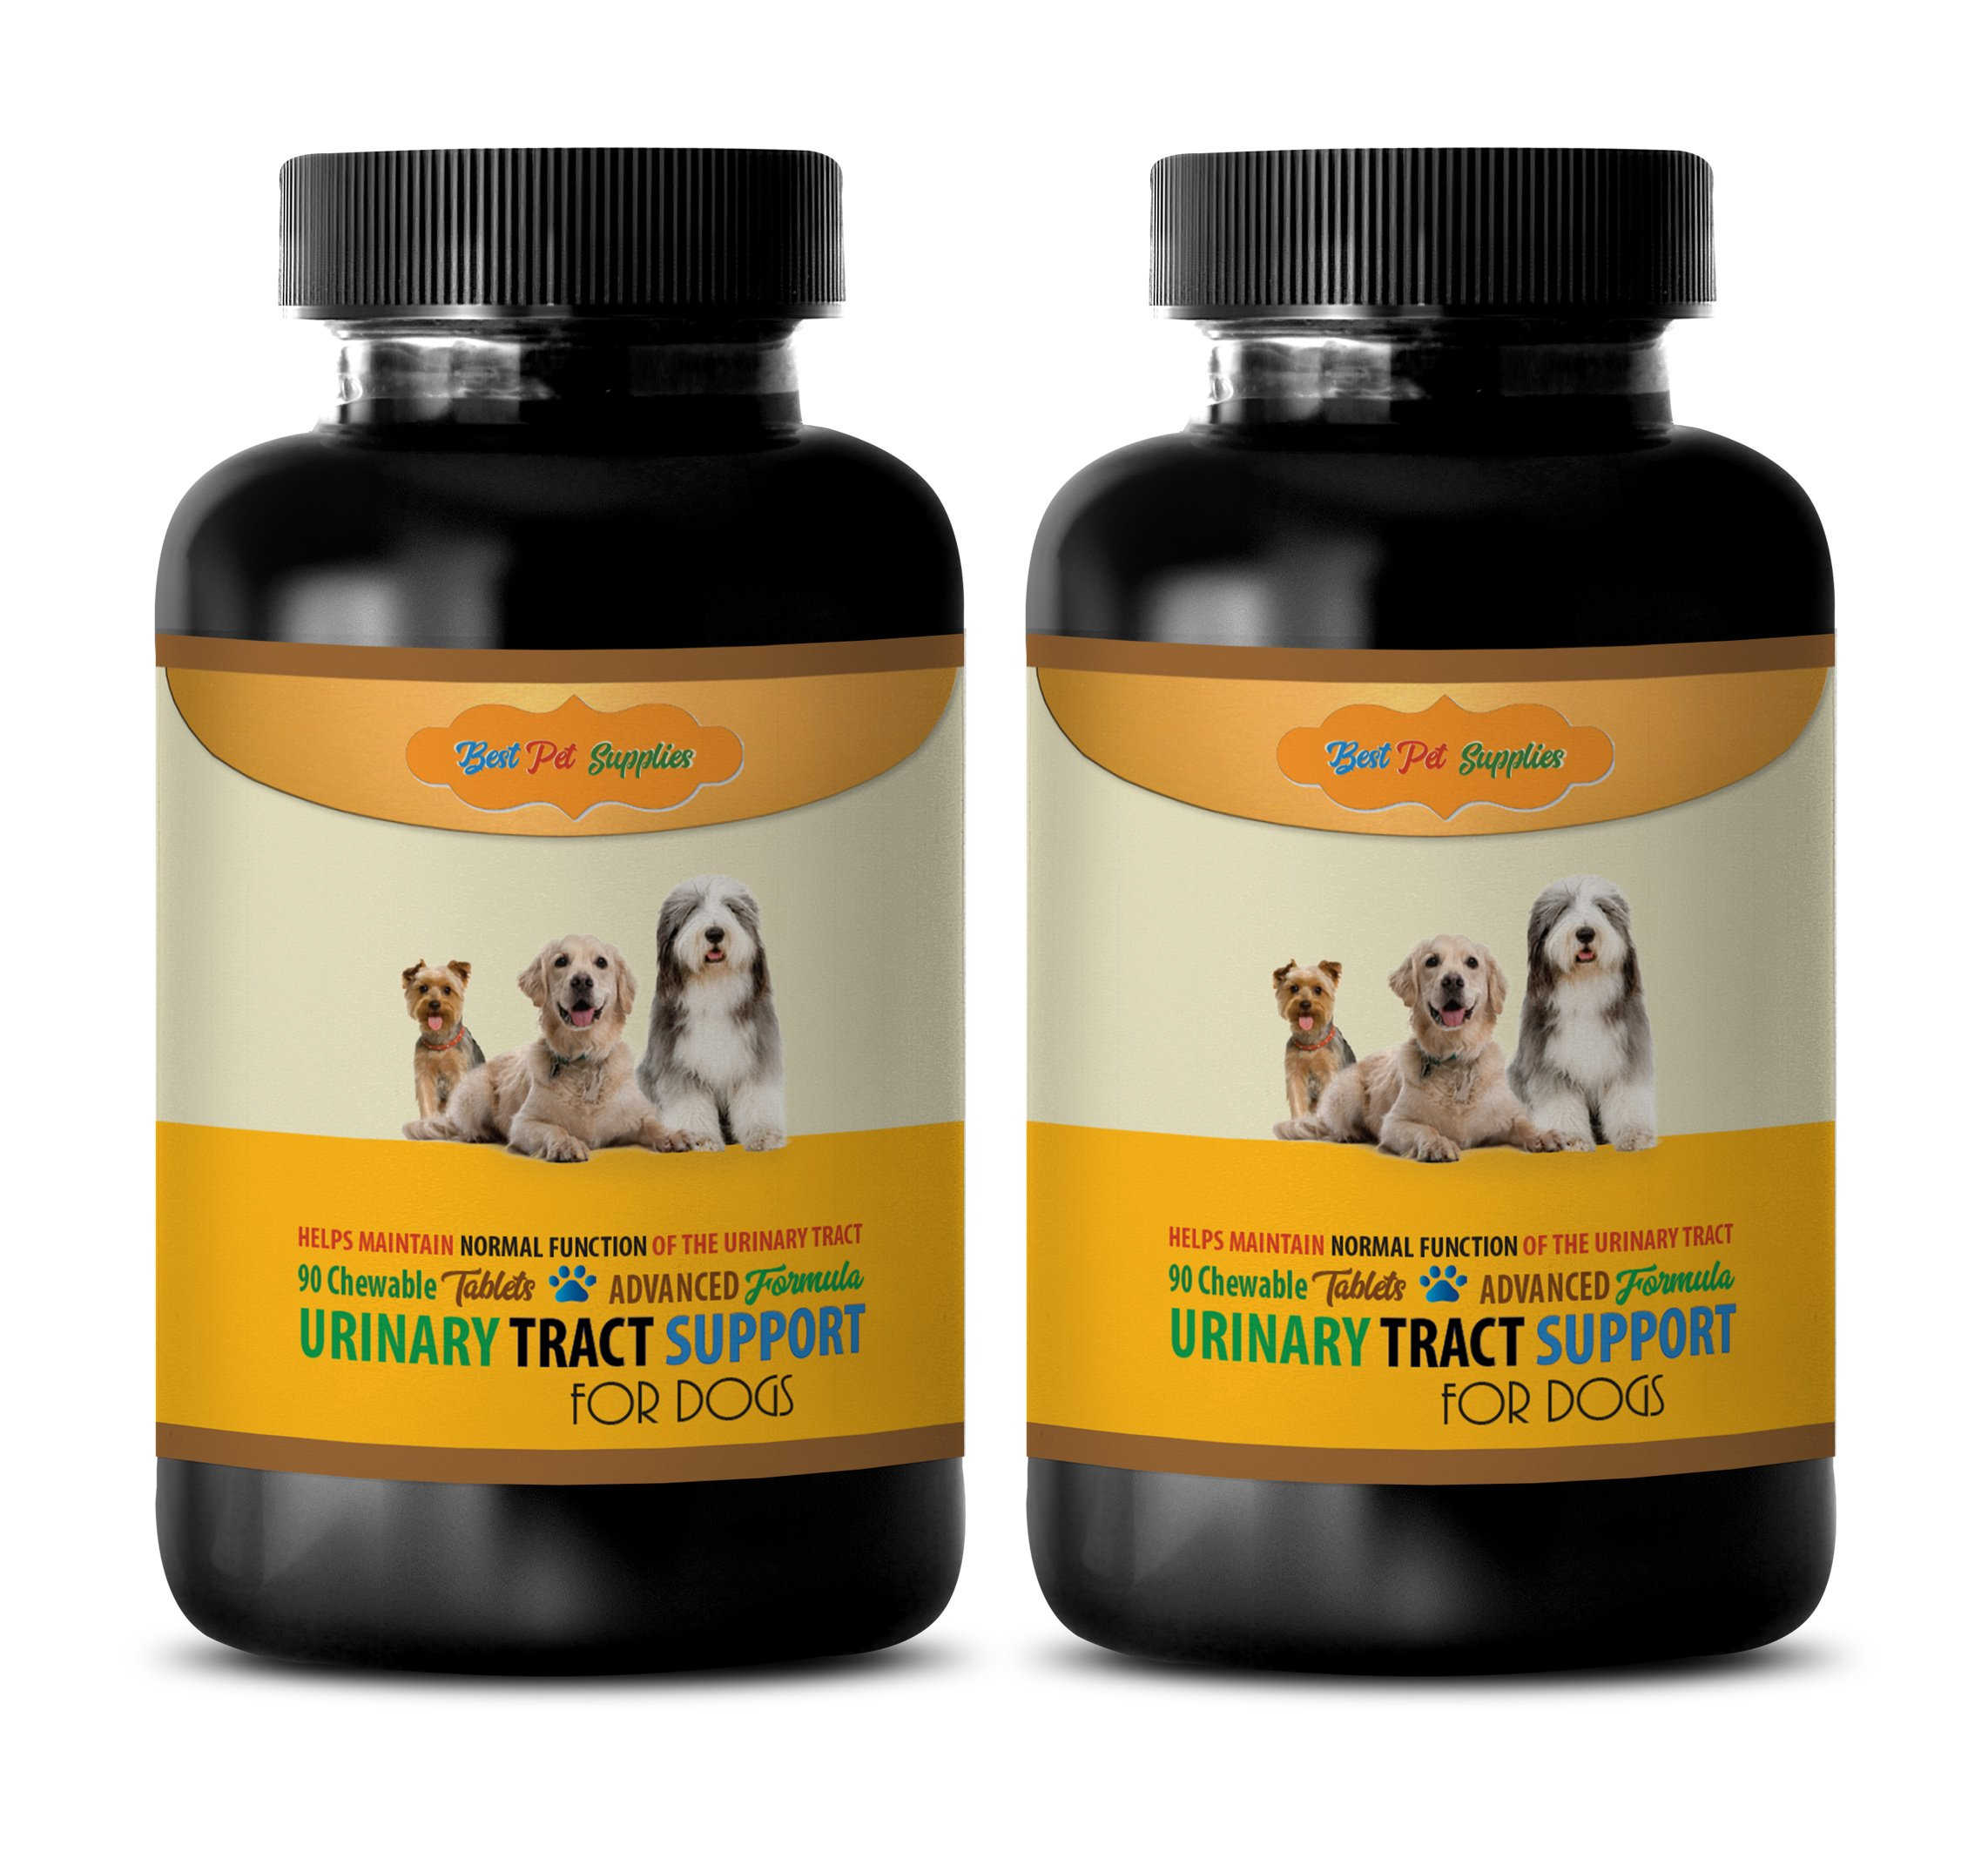 BEST PET SUPPLIES LLC Dog Urinary Tract Support - Advanced Urinary Tract Support - for Dogs - CHEWABLE - Powerful Dog Formula - Dog Marshmallow - 180 Chews (2 Bottle) by BEST PET SUPPLIES LLC